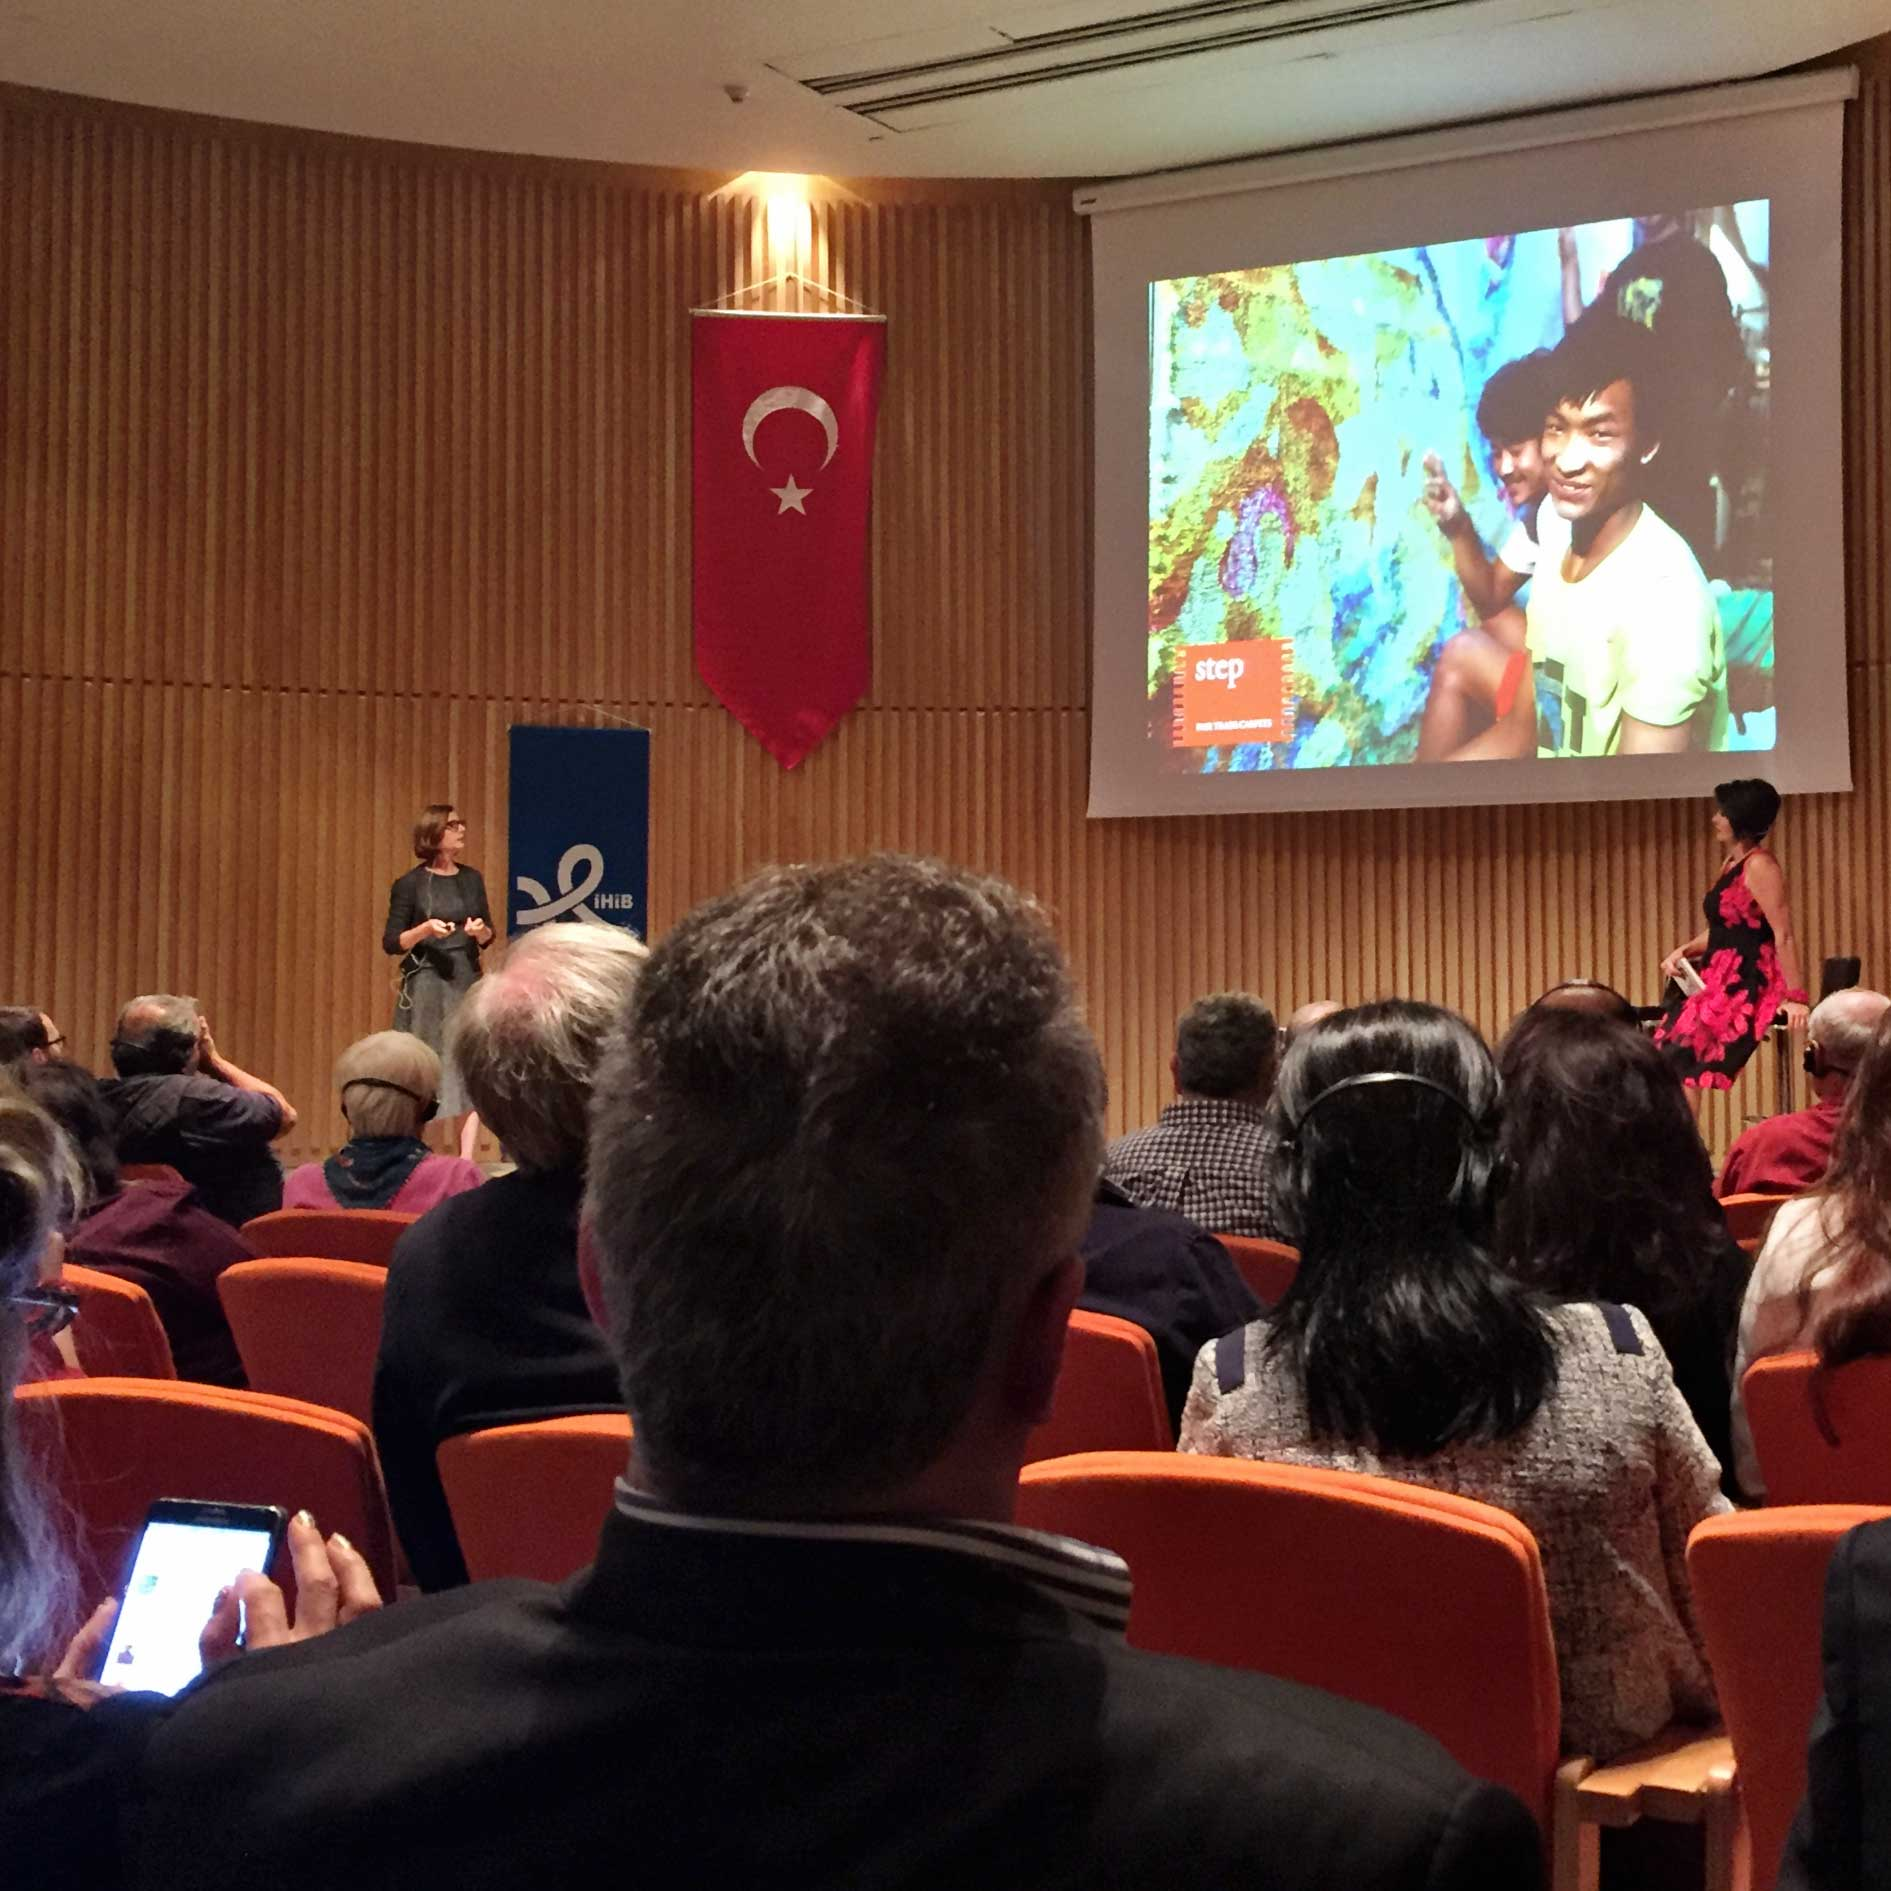 Carol Sebert of Creative Matters is shown speaking about LabelSTEP during her presentation 'Contemporary Carpet Design' during the Istanbul International Carpet Conference, 6 October 2016. | Image courtesy of The Ruggist.